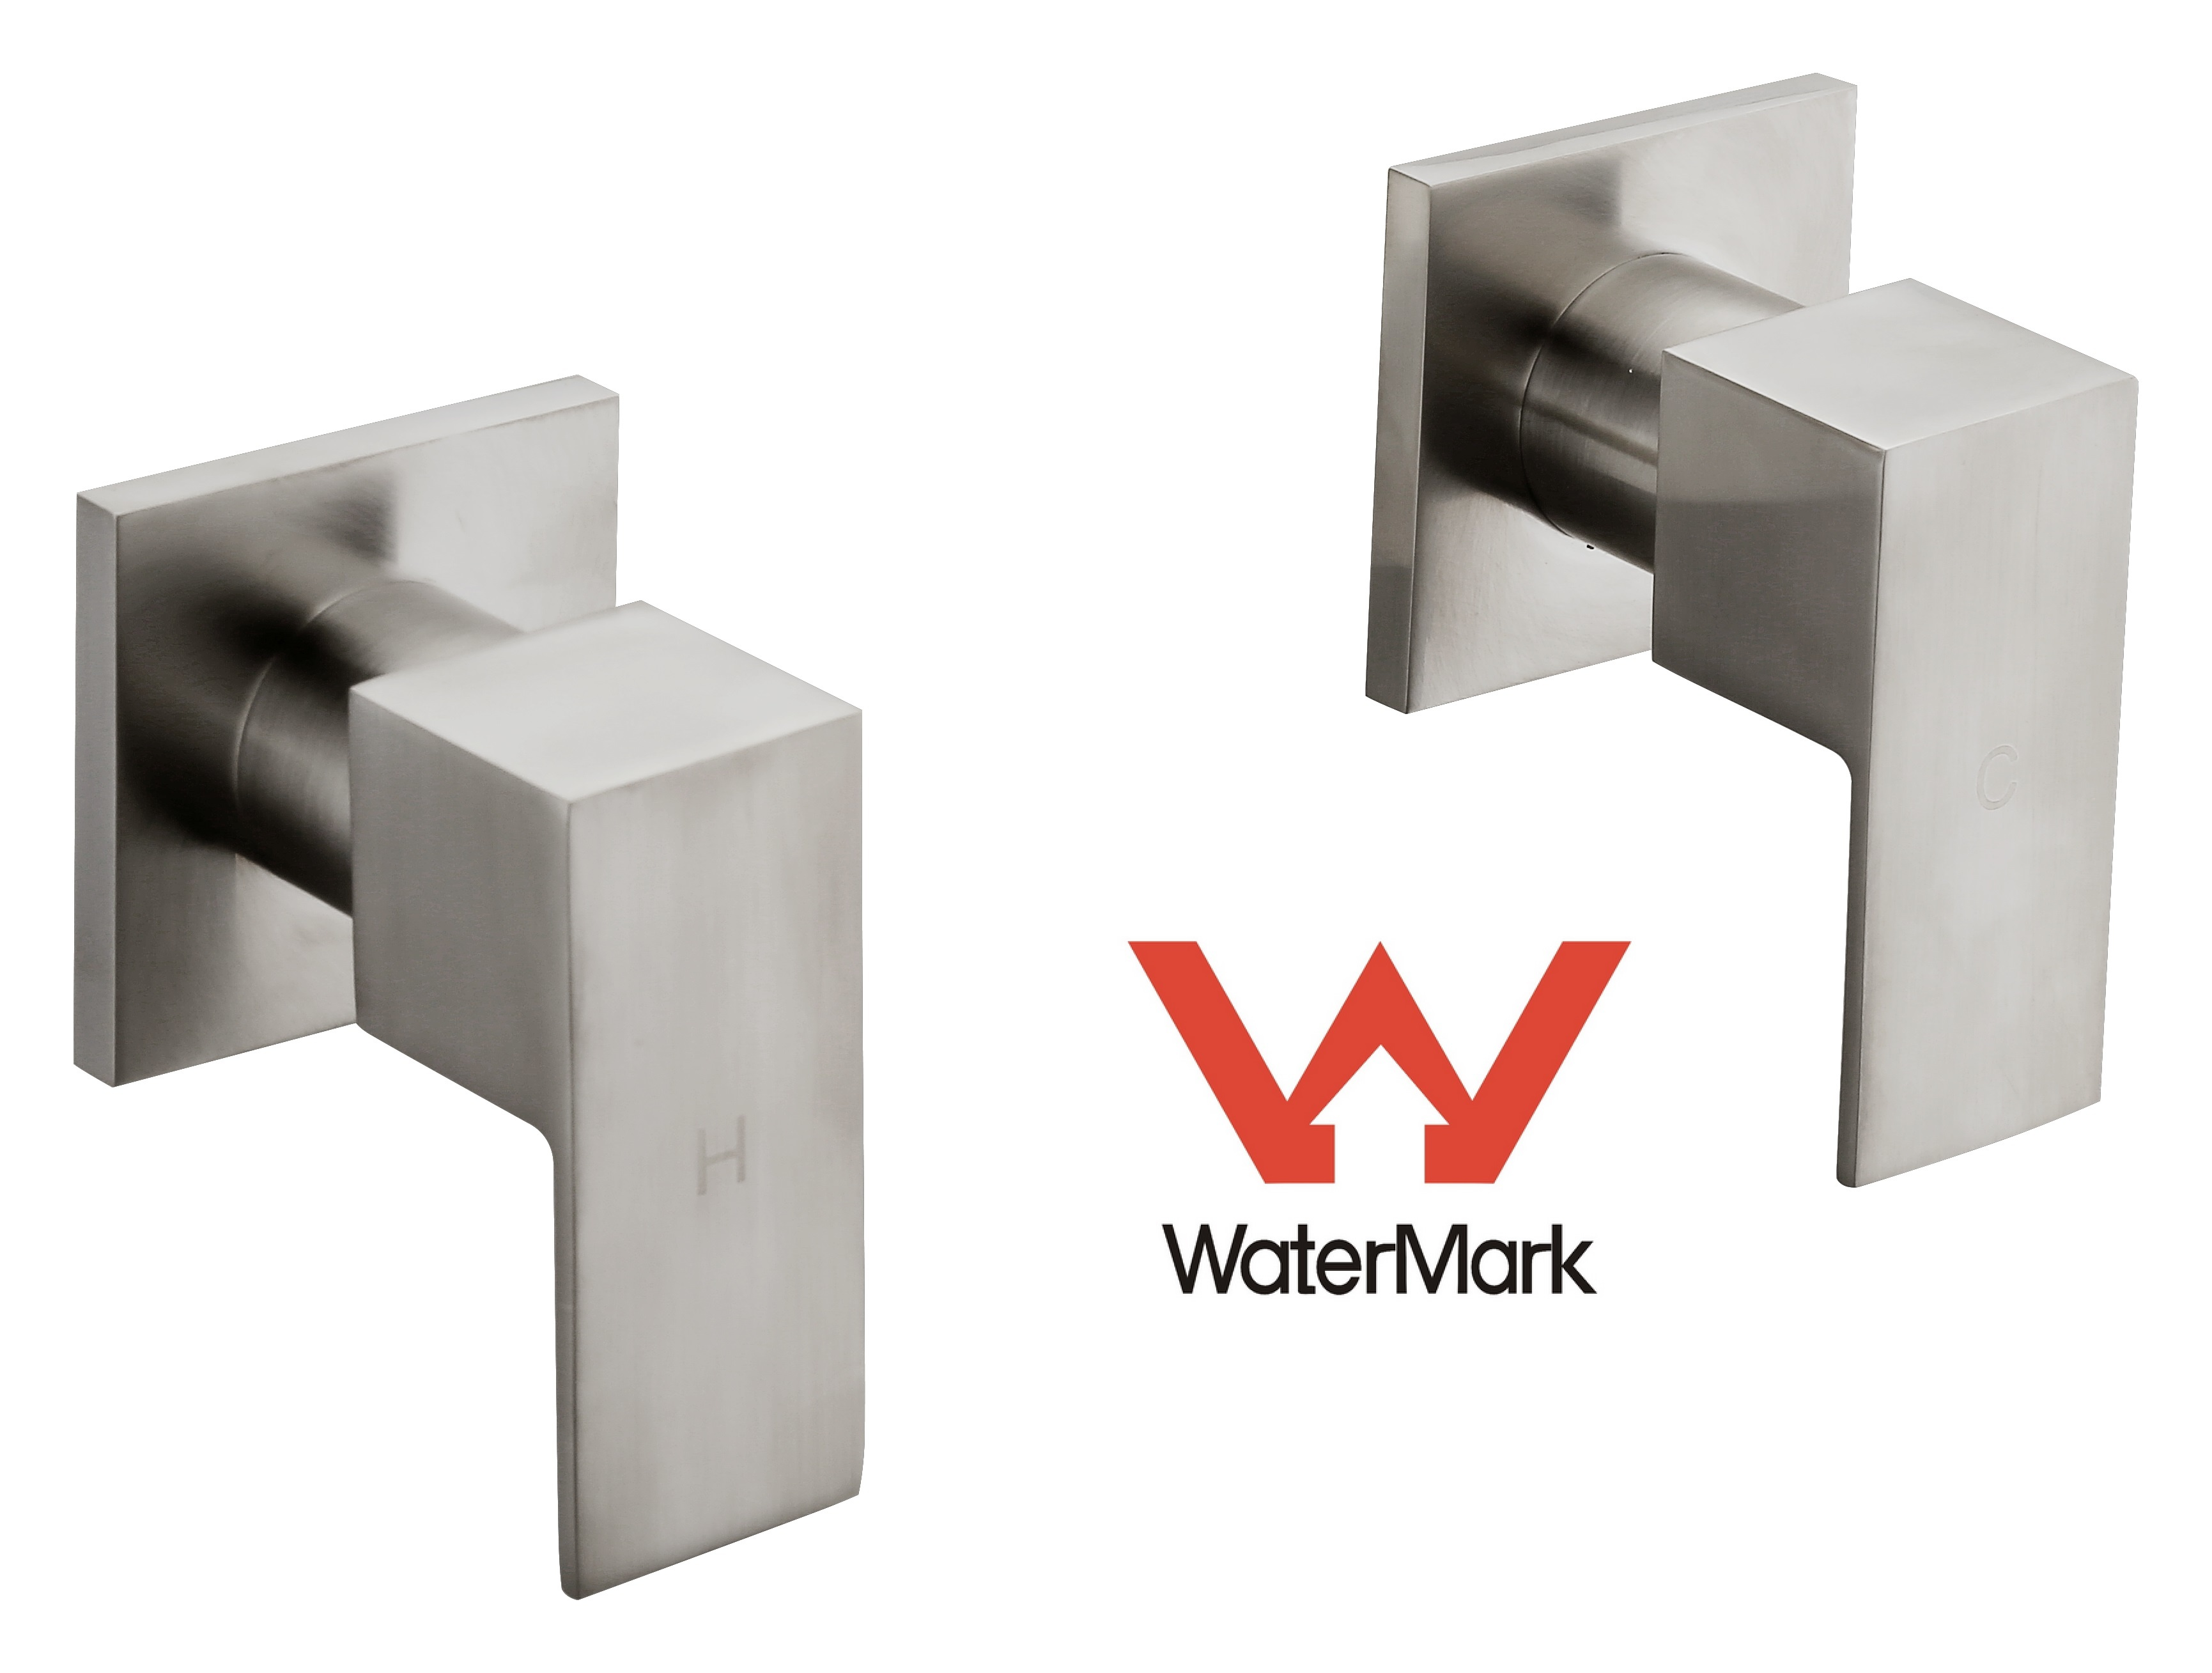 Chrome Bathroom Shower / Bath Mixer Tap Set with Brushed Finish w/ WaterMark  Z2702